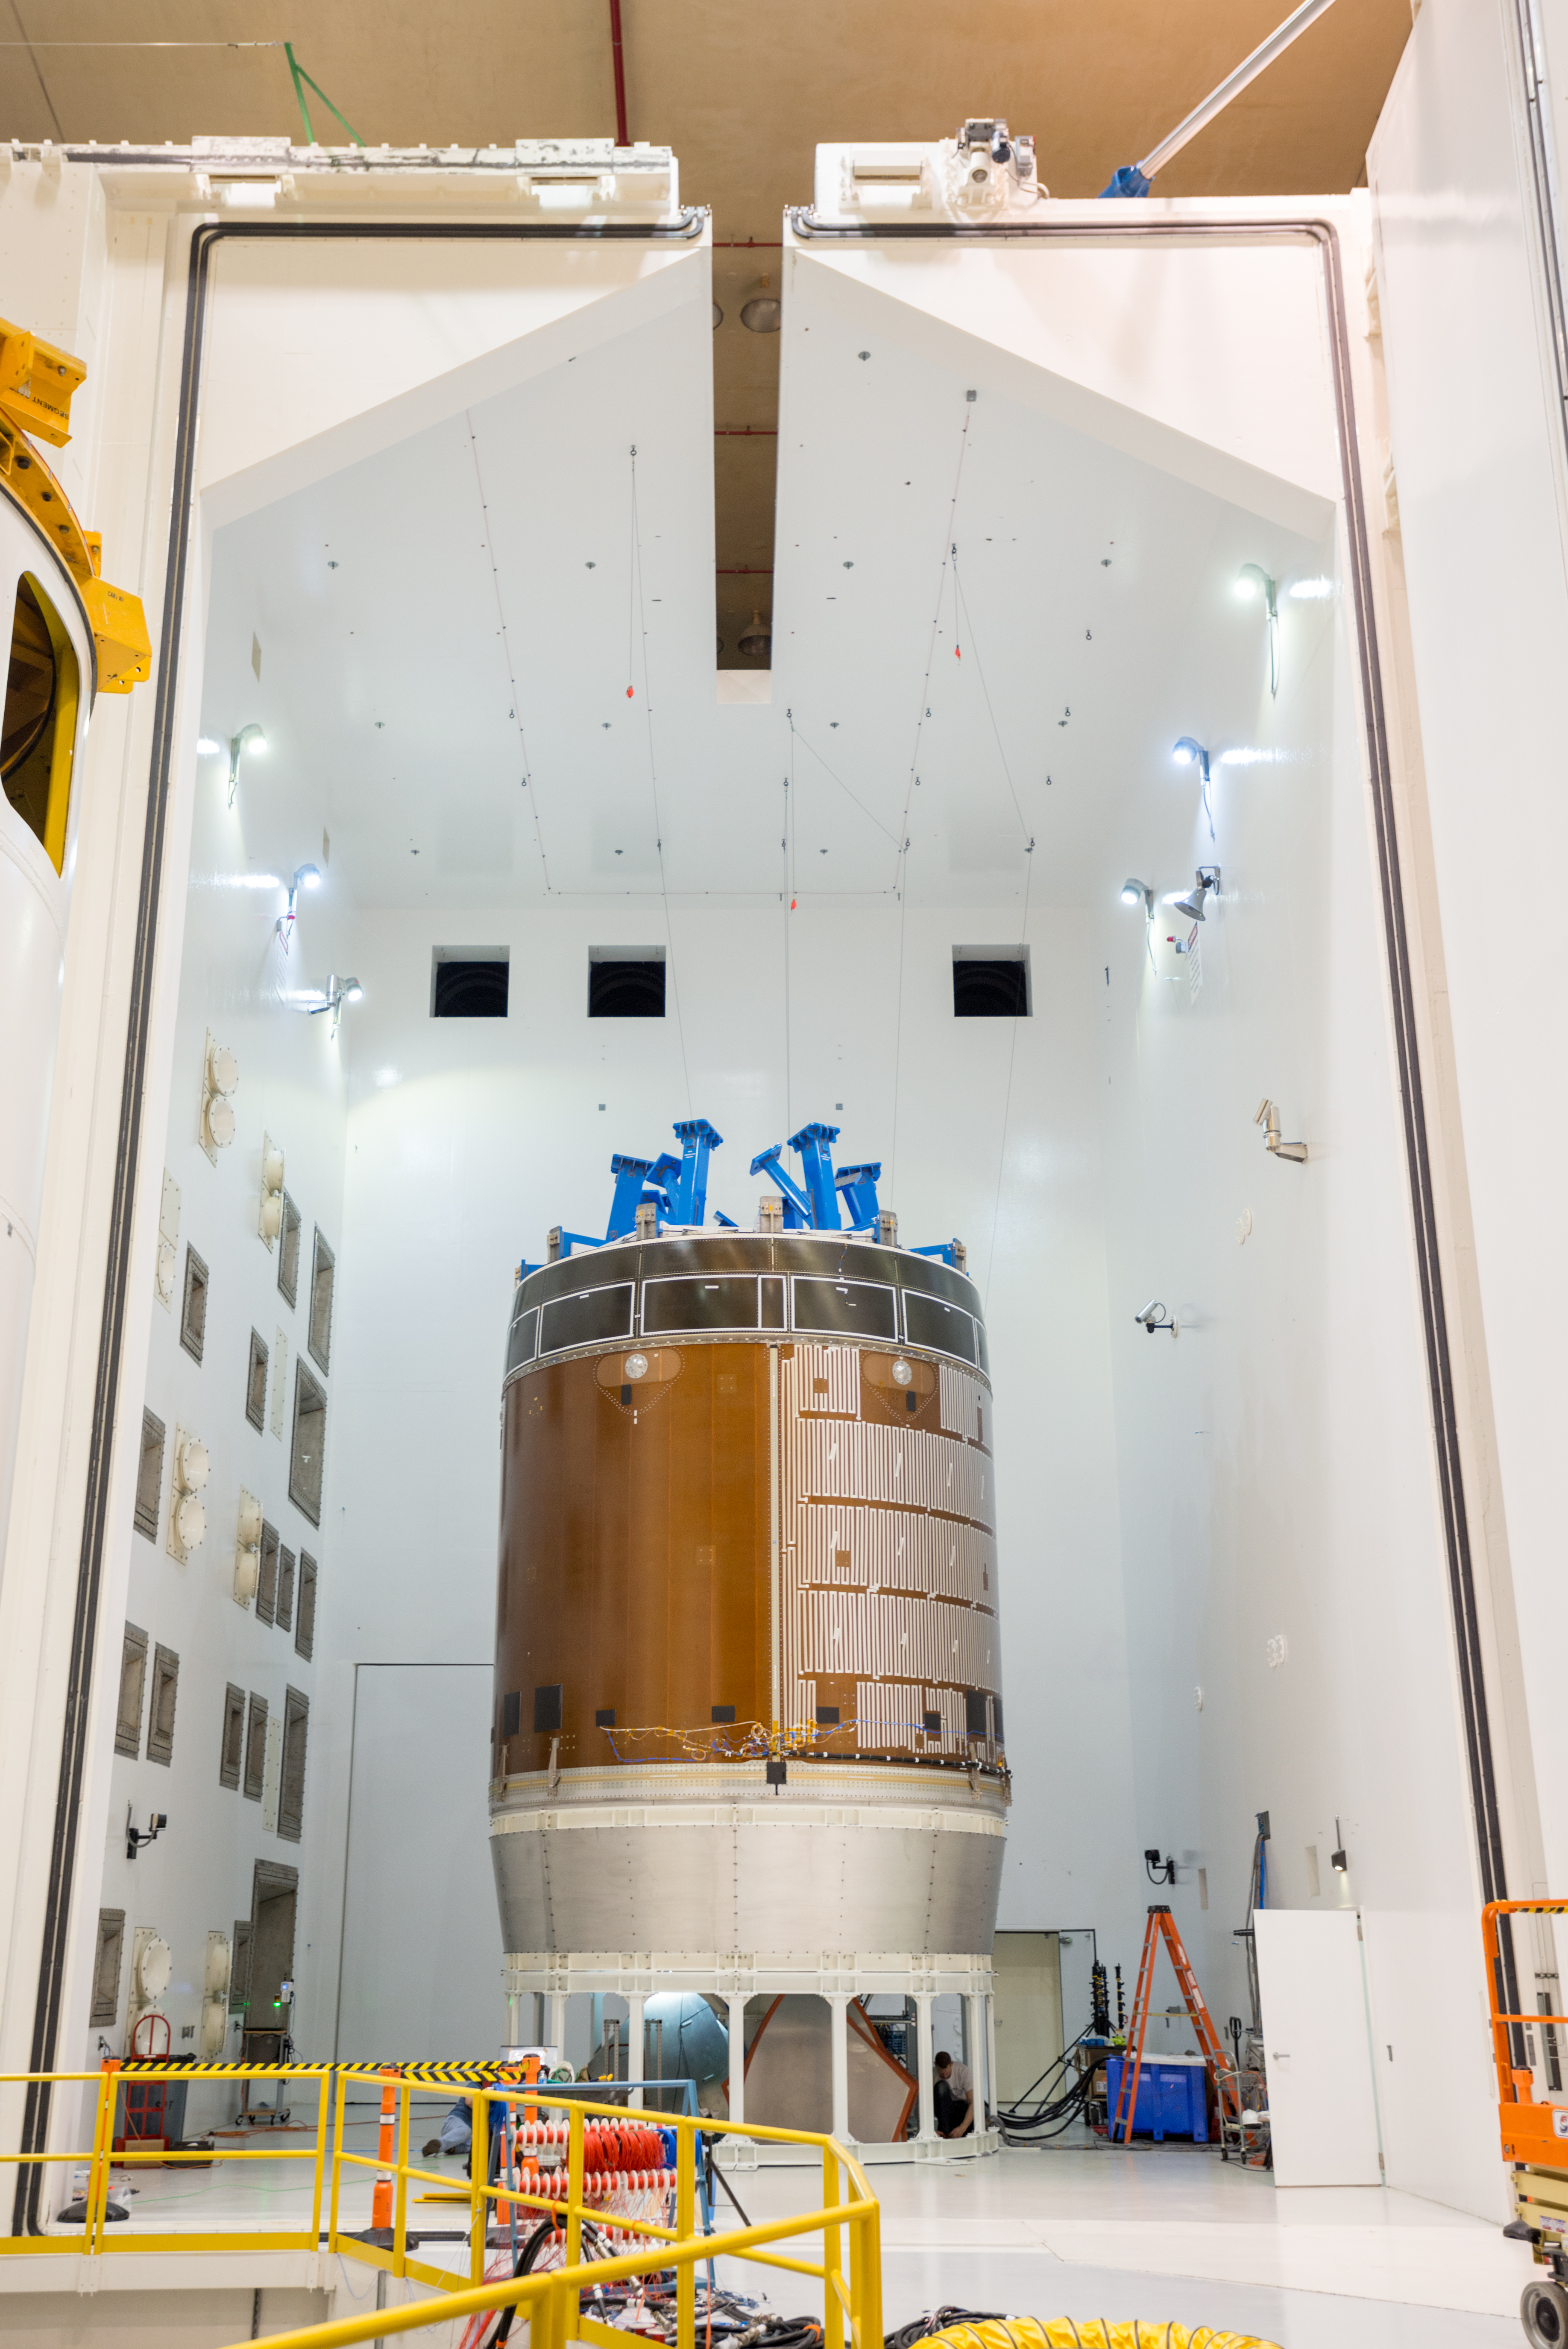 orion s service module completes critical design review nasa